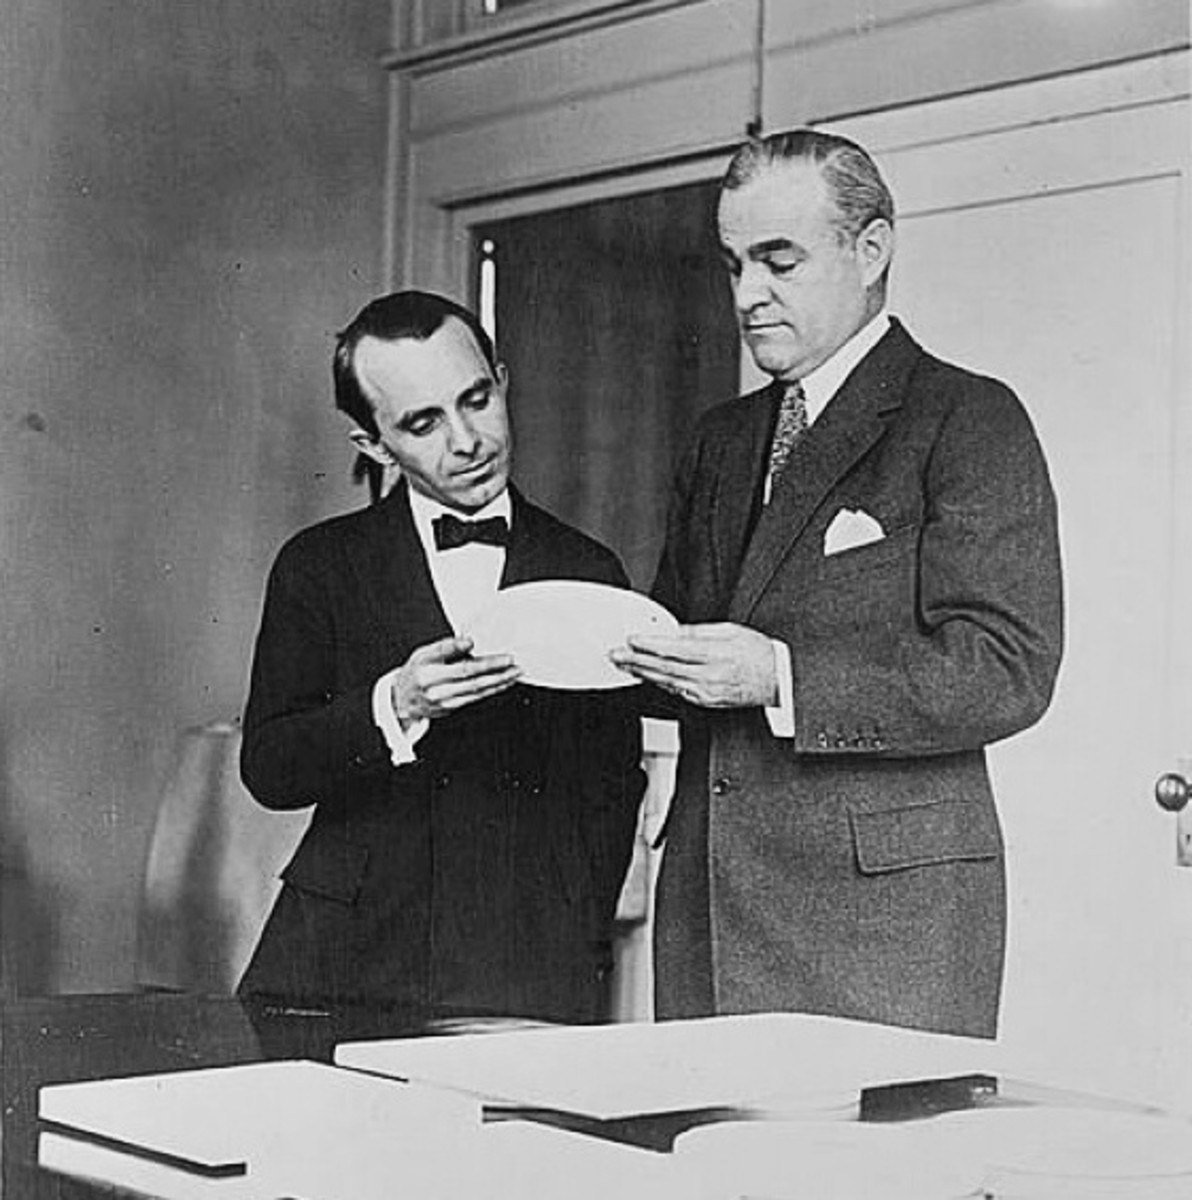 Sculptor Anthony de Francisci (left) and Mint Director Raymond T. Baker (right) inspecting a plaster model of the new silver dollar coin.